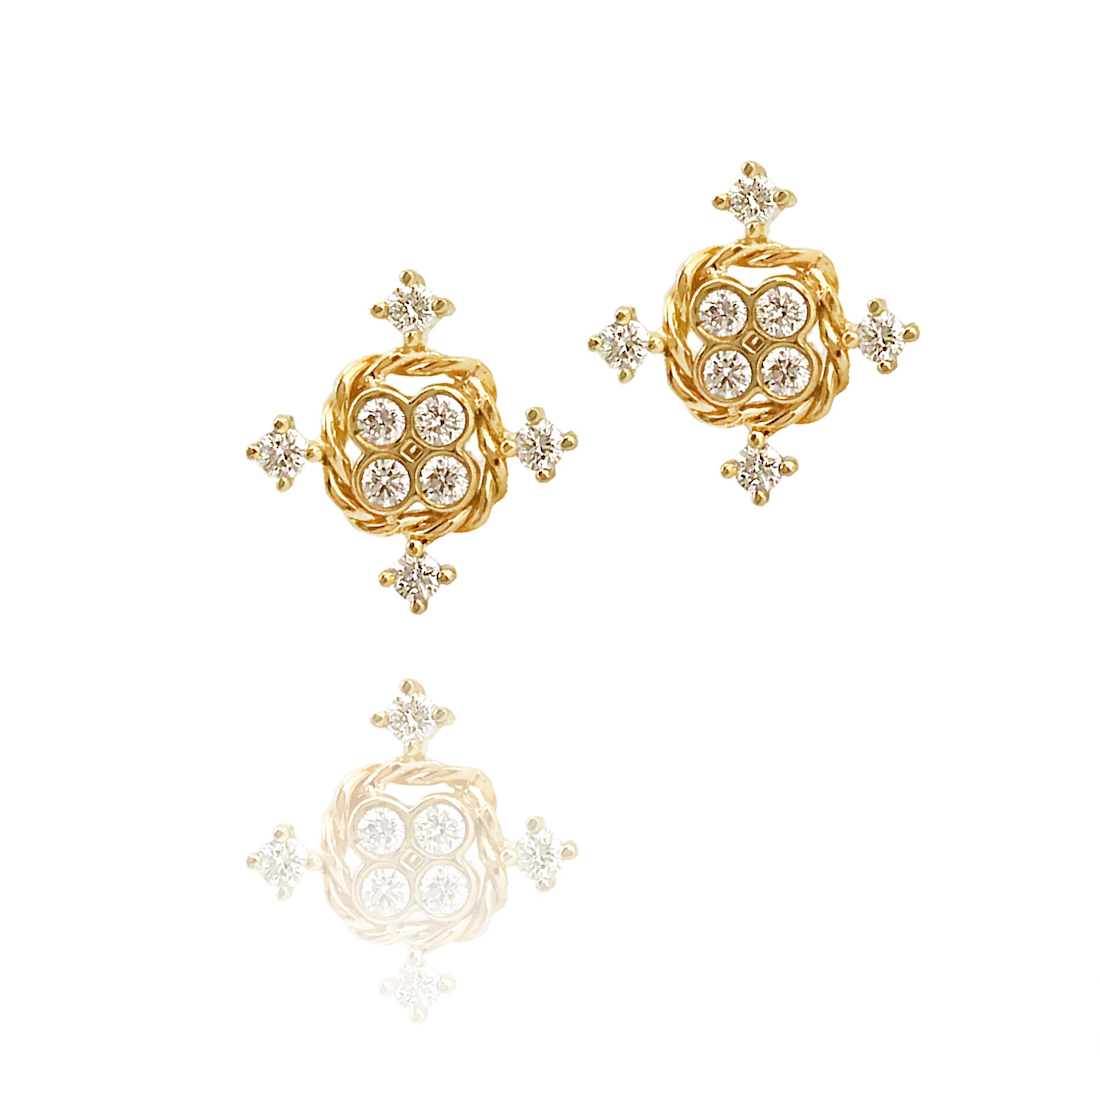 18k Gold Diamond Four Star Twist Box Stud Earrings